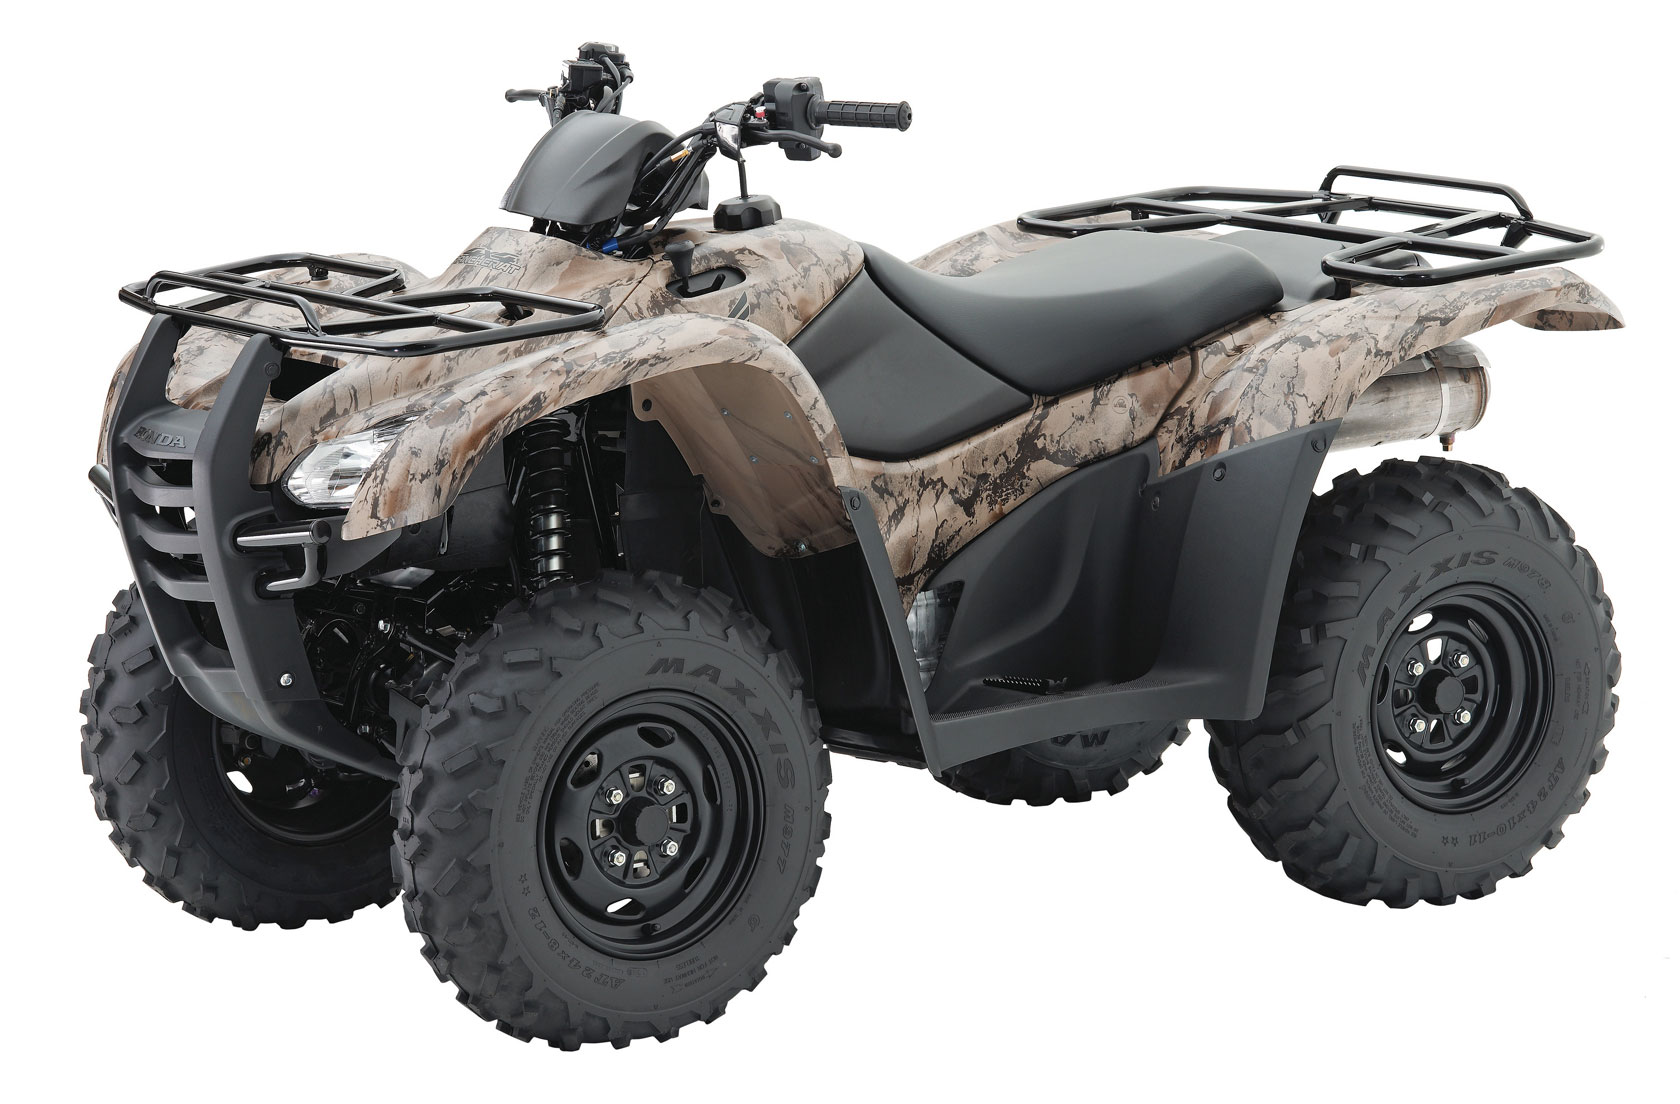 honda fourtrax rancher at-pic. 2